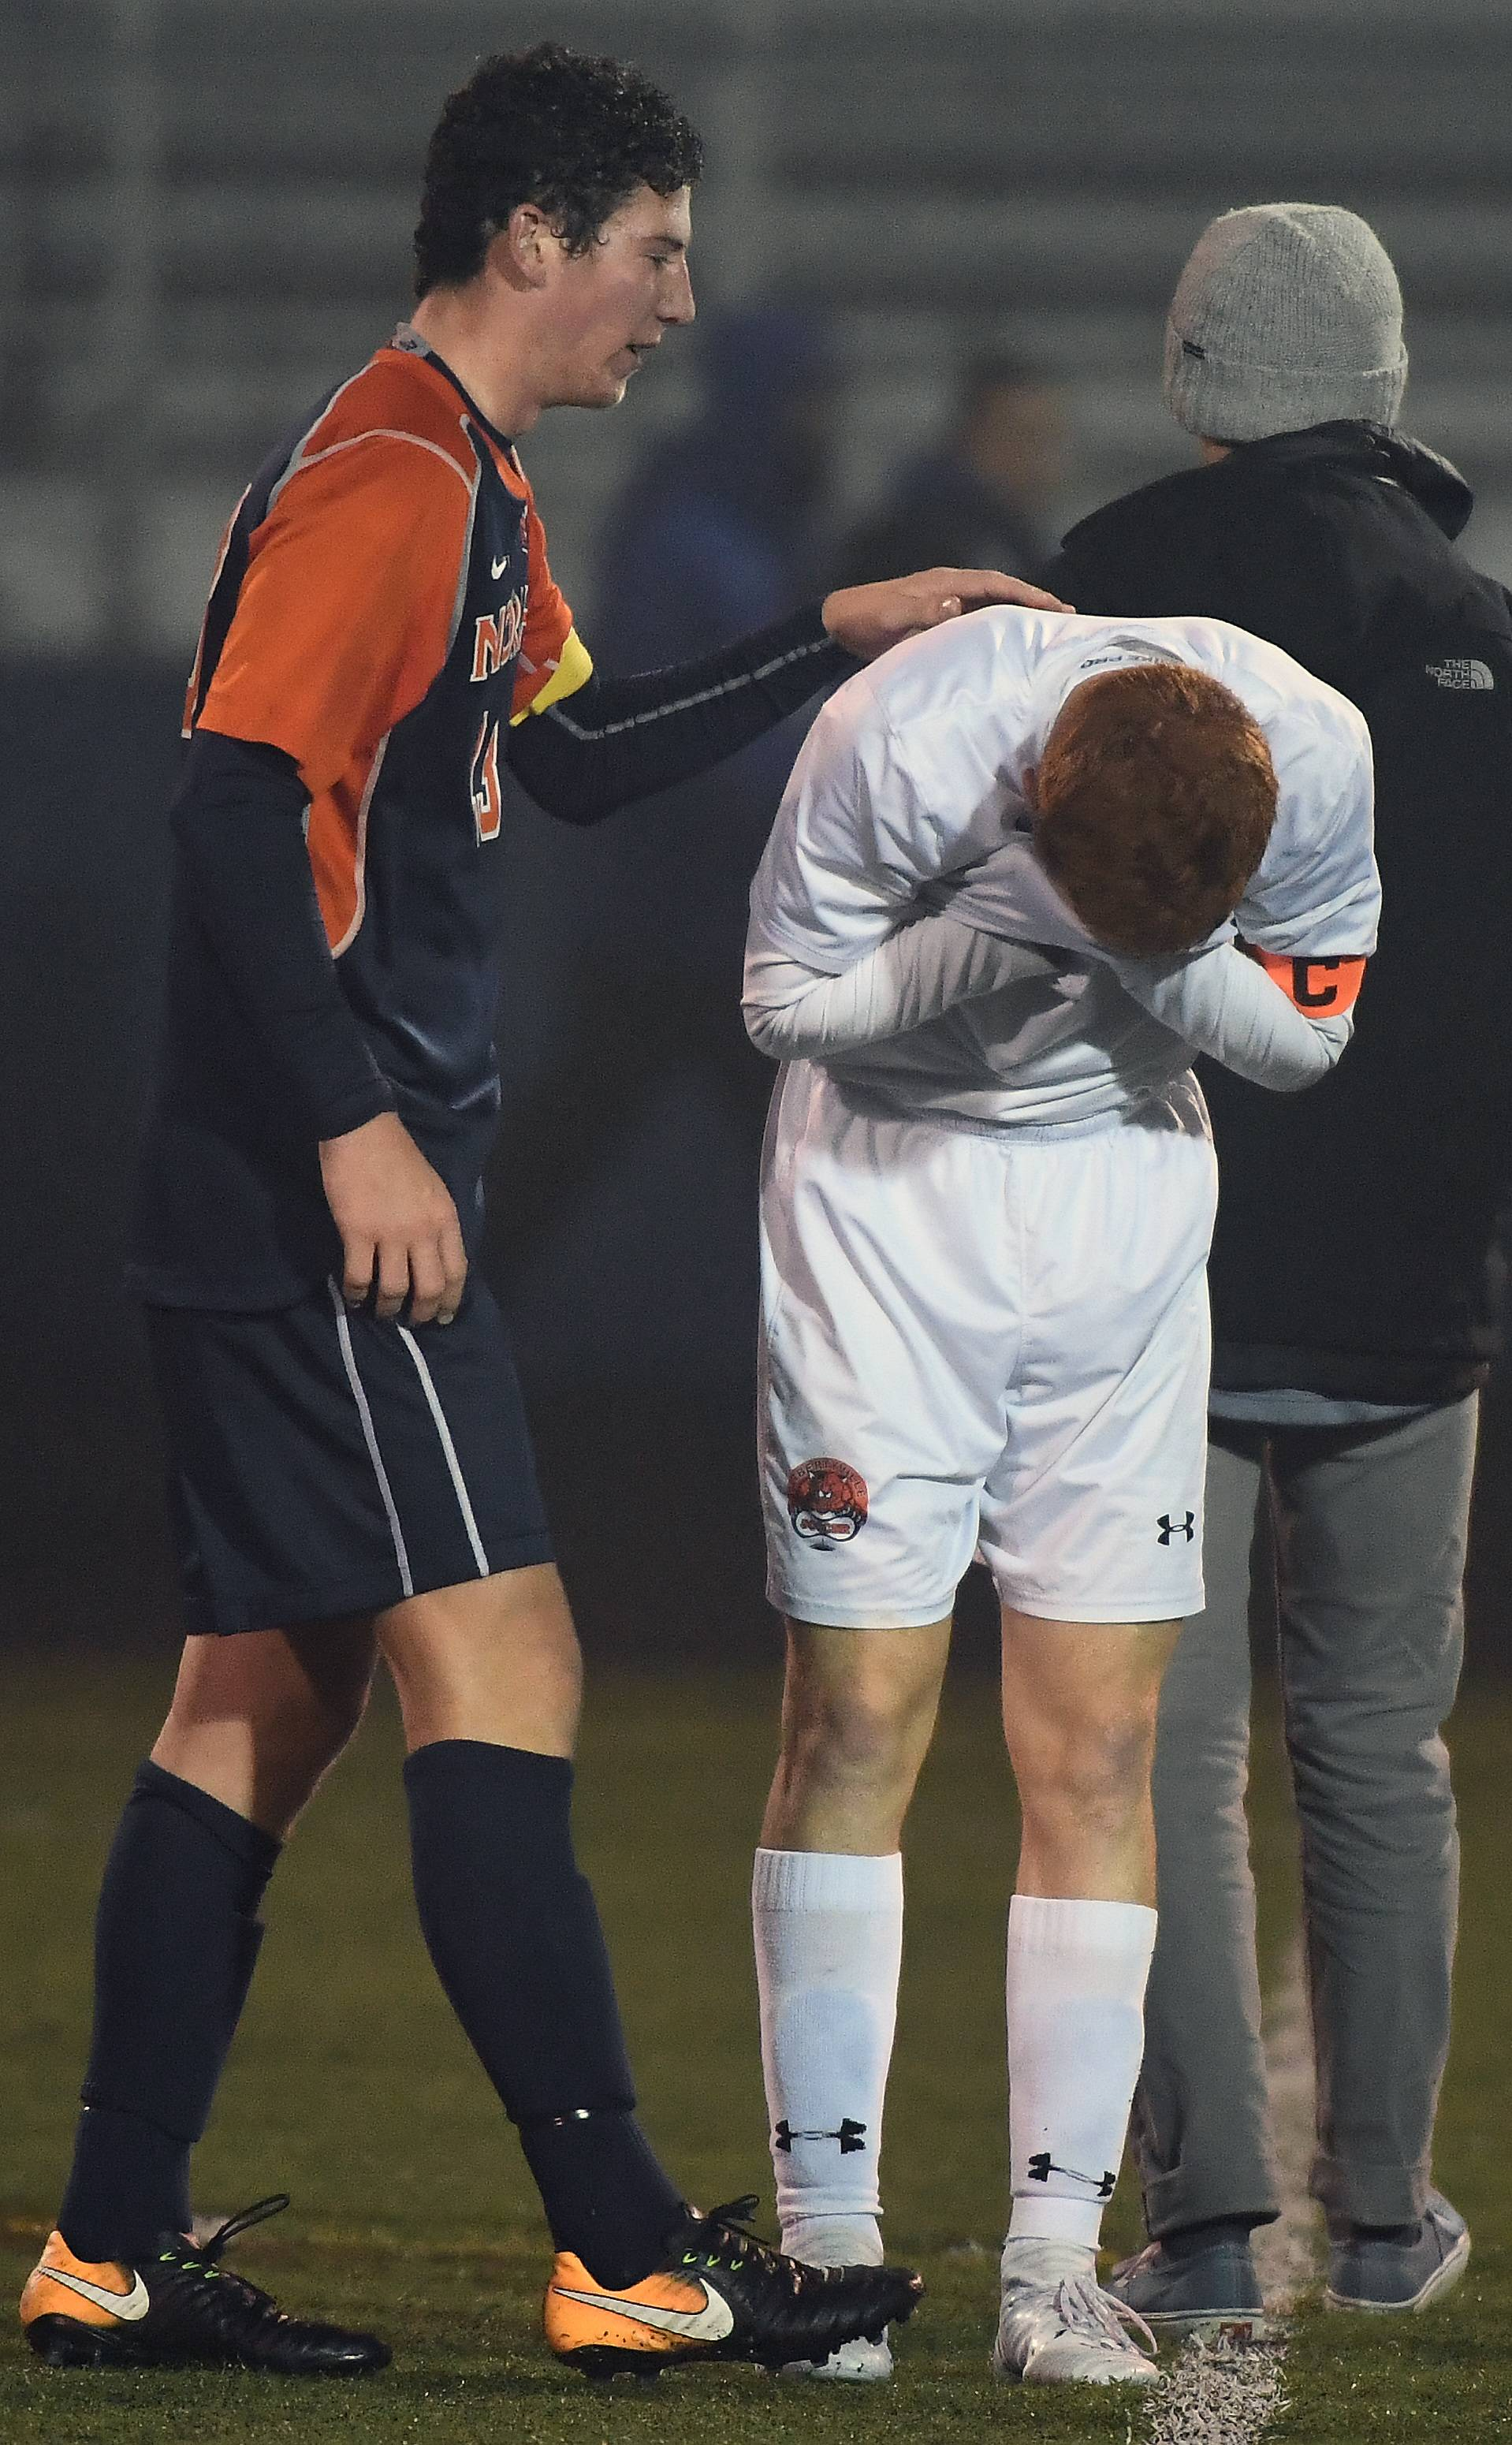 Naperville North's Jack Barry consoles Libertyville's Ryan Wittenbrink after the Wildcats' 1-0 loss in the Class 3A boys soccer state championship game at Hoffman Estates.